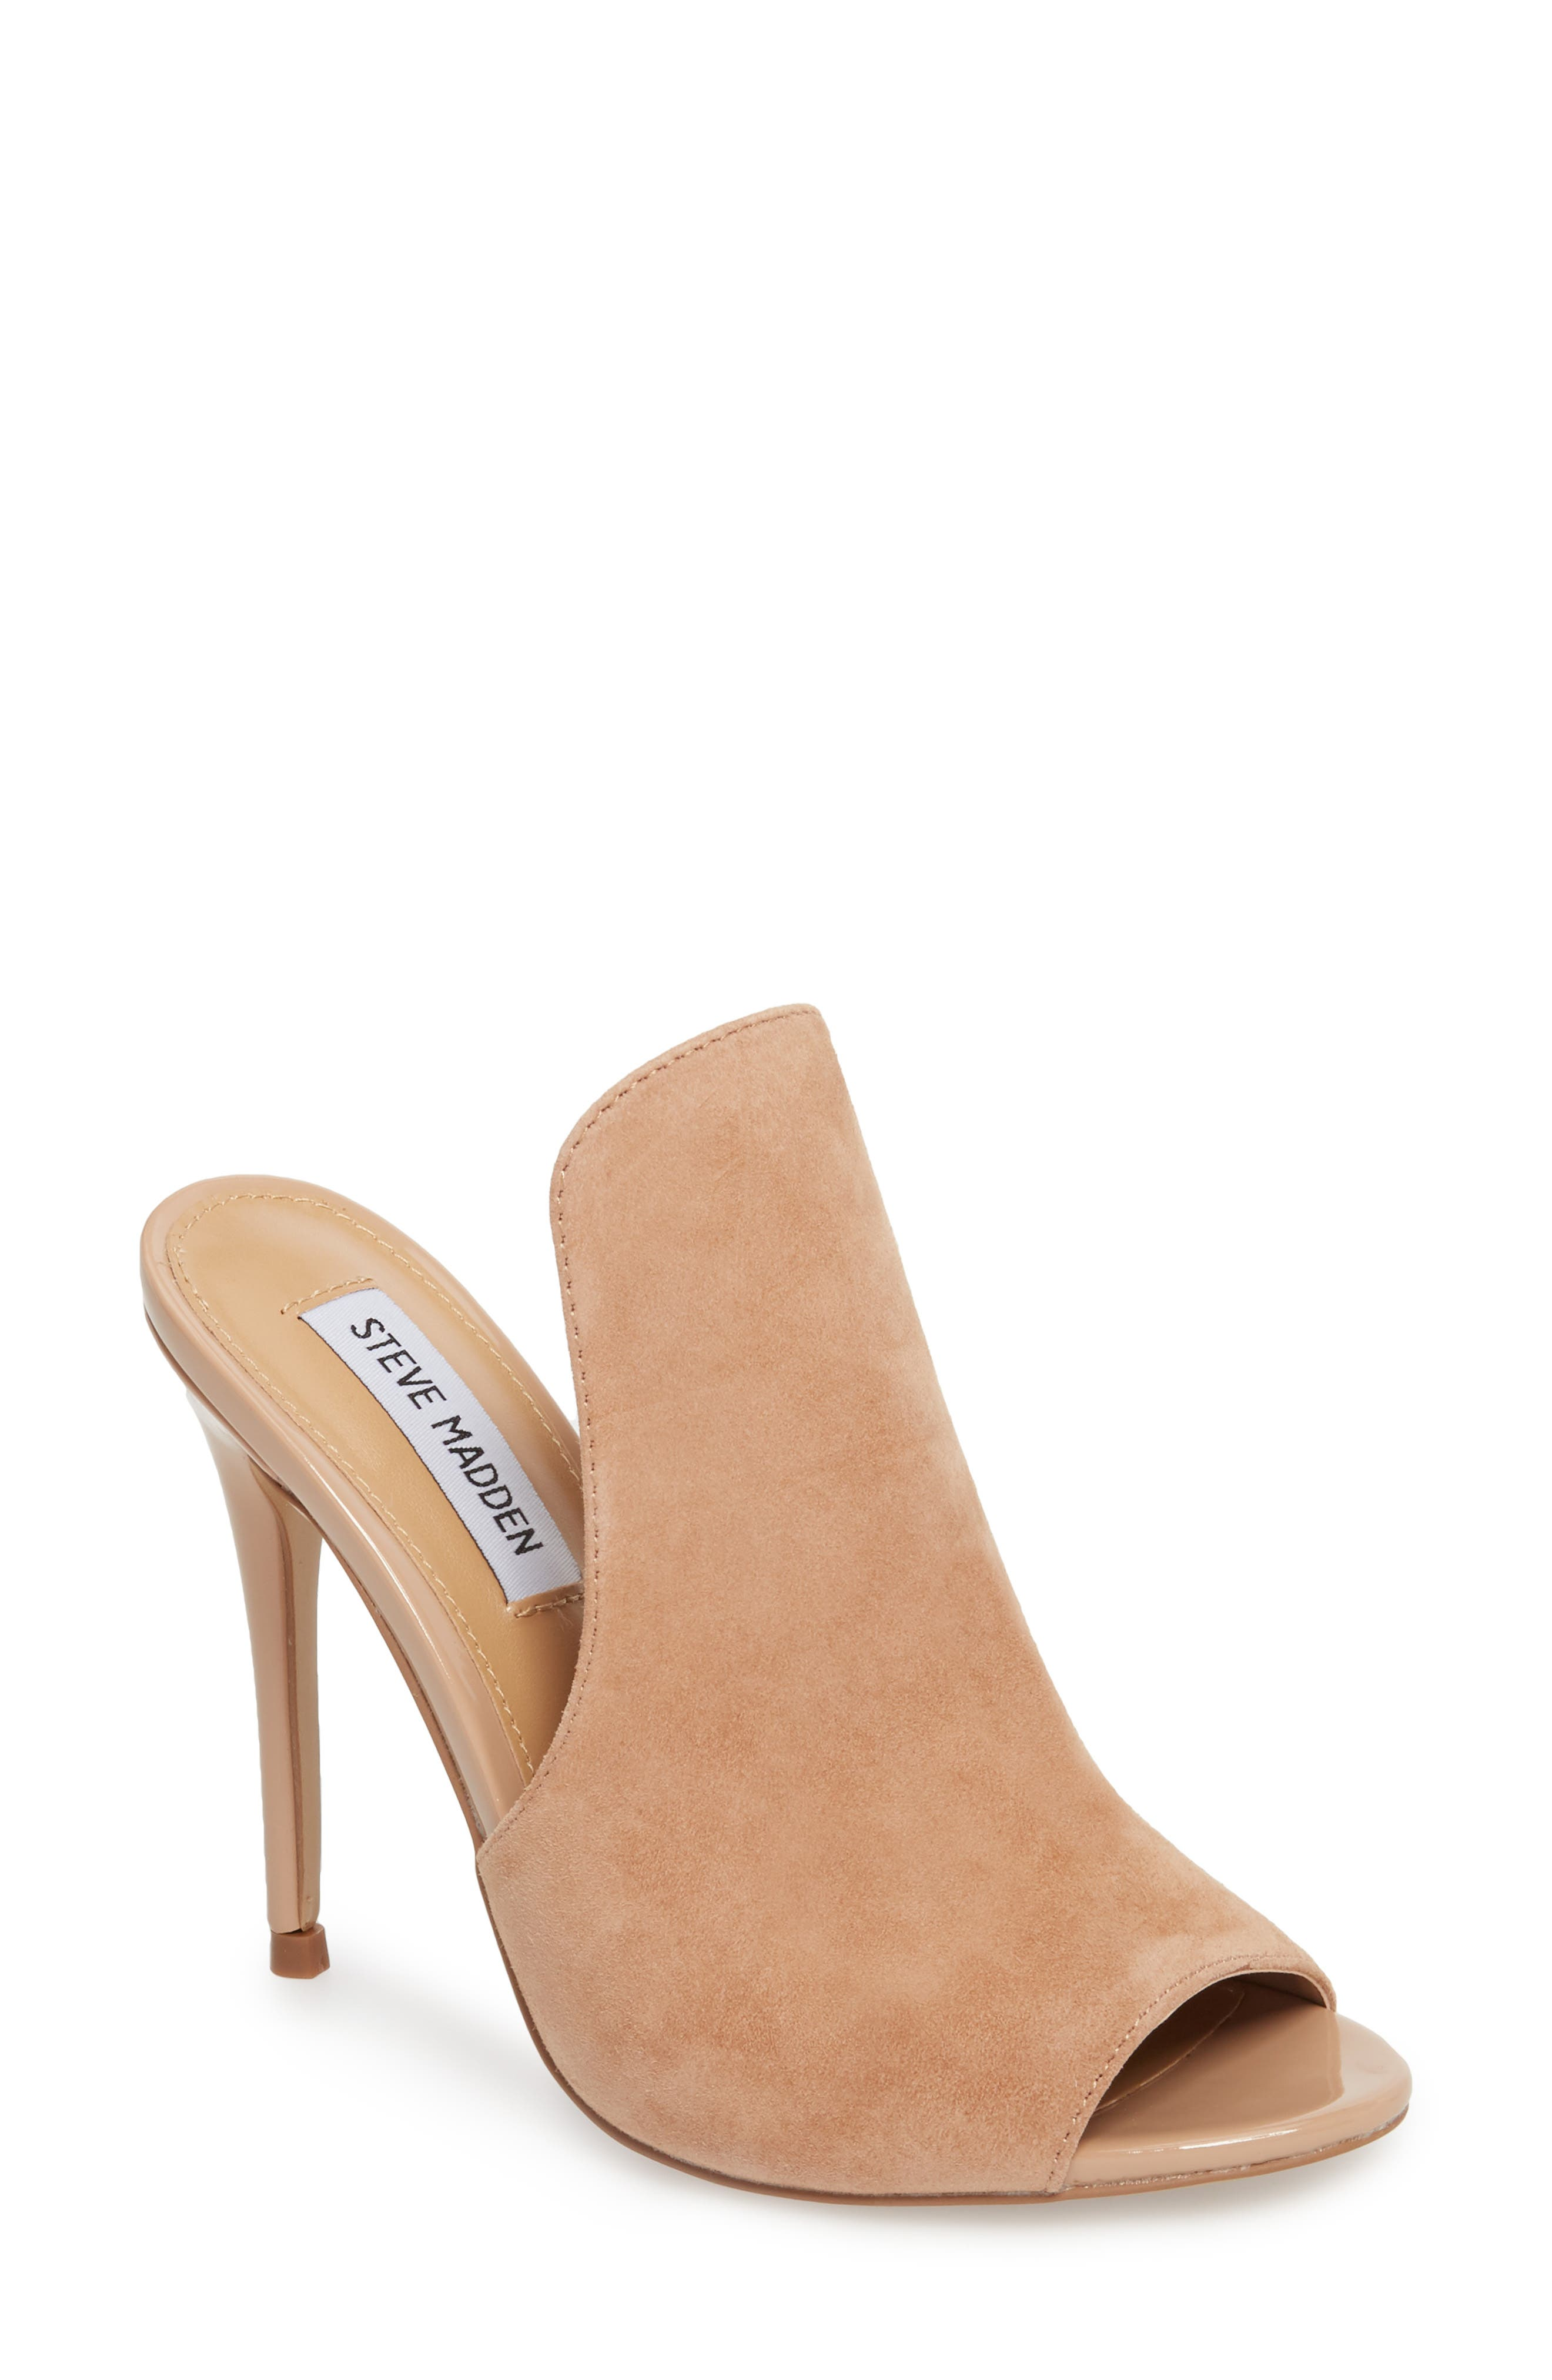 Sinful Sandal,                         Main,                         color, Nude Suede